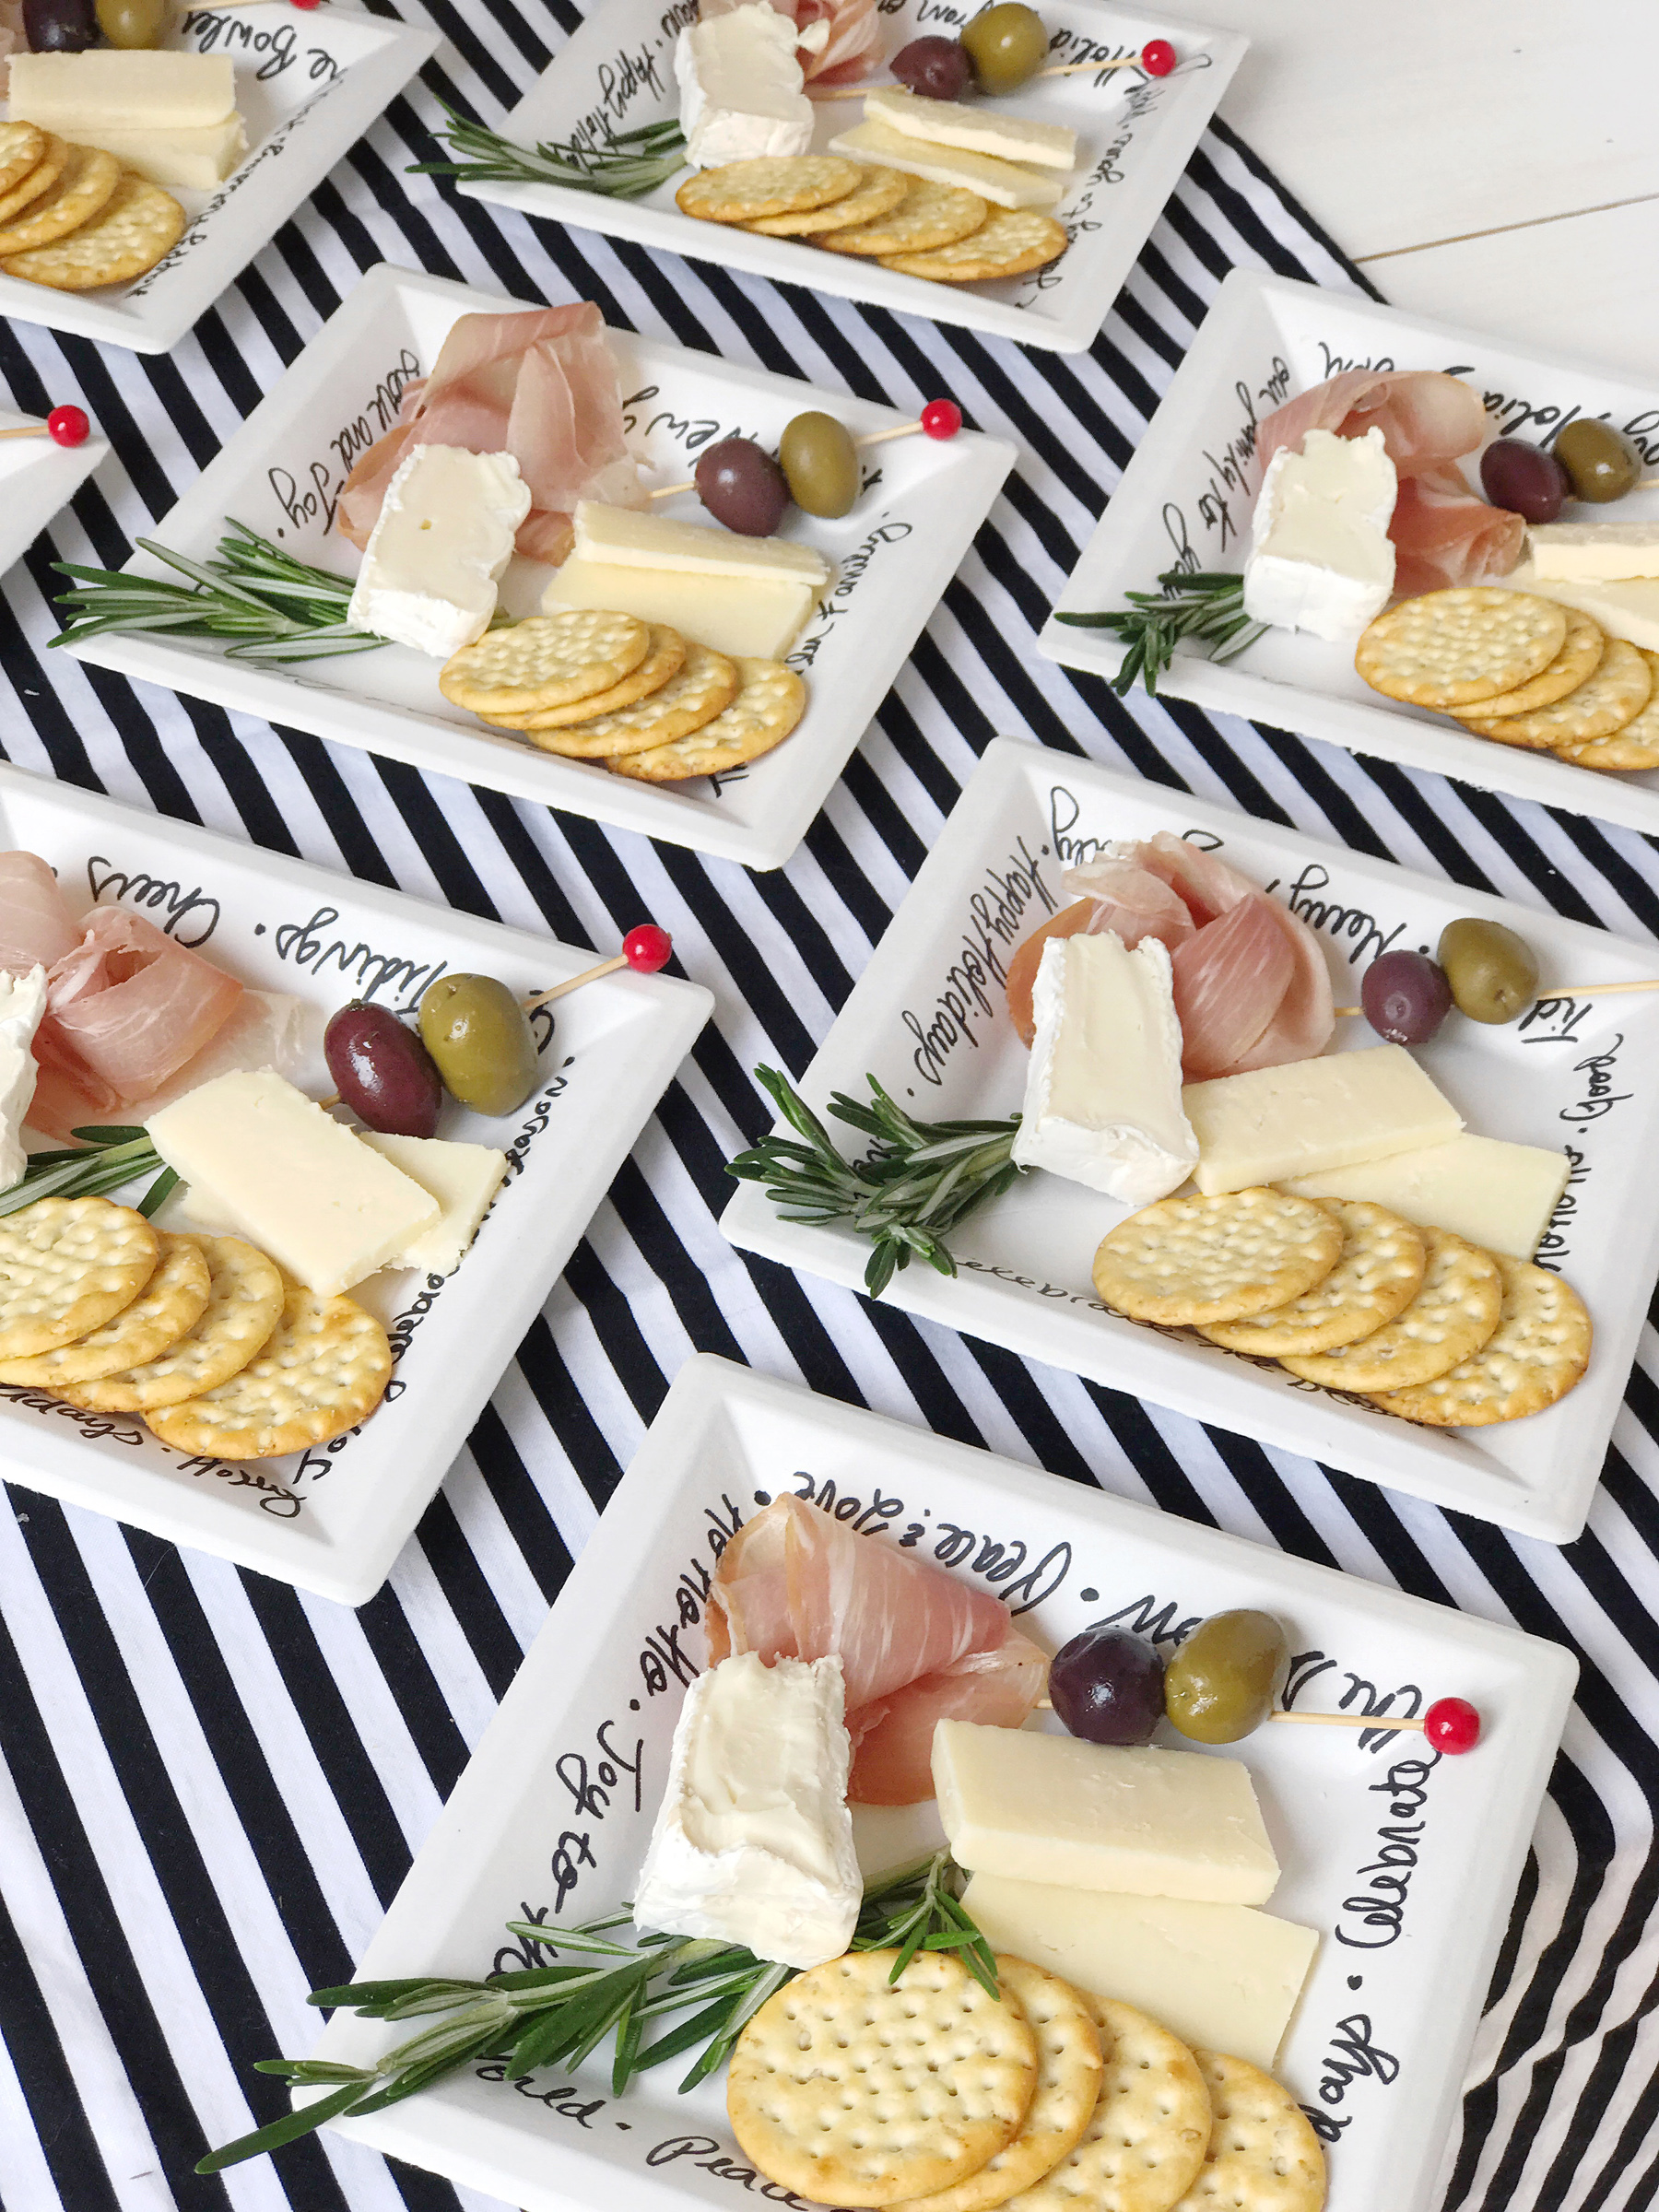 And donu0027t worry about clean up you can stack up the plates and pop them in the recycling bin! The customization of the plates paired with some simple ... & Mini Holiday Cheese Plates. - DomestikatedLife